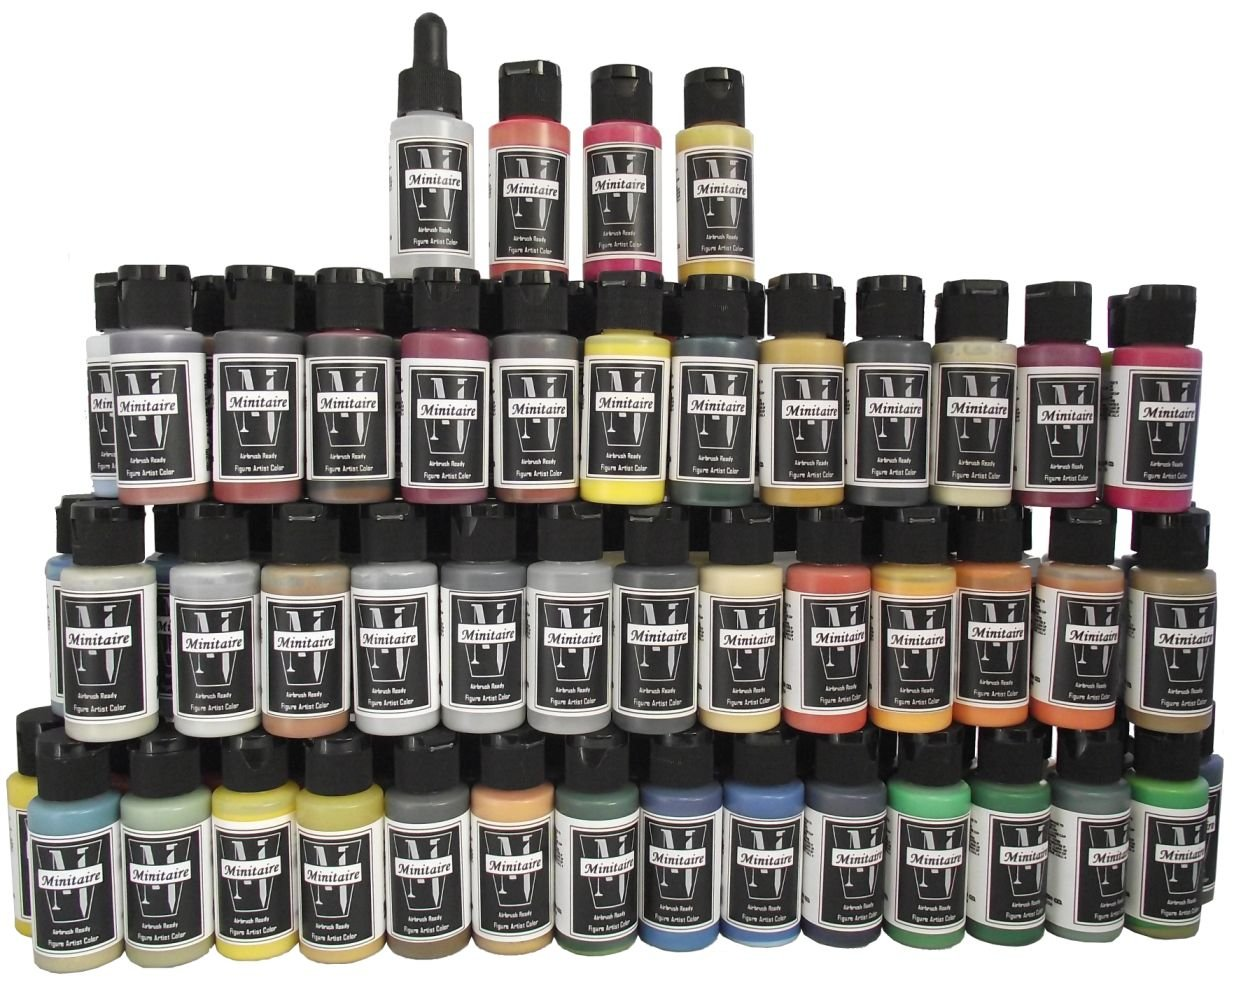 Badger Air-Brush Company Minitaire Color Paint Set with Color Coat/Paint Retarder Badger Air-Brush Co. MAFS-84C